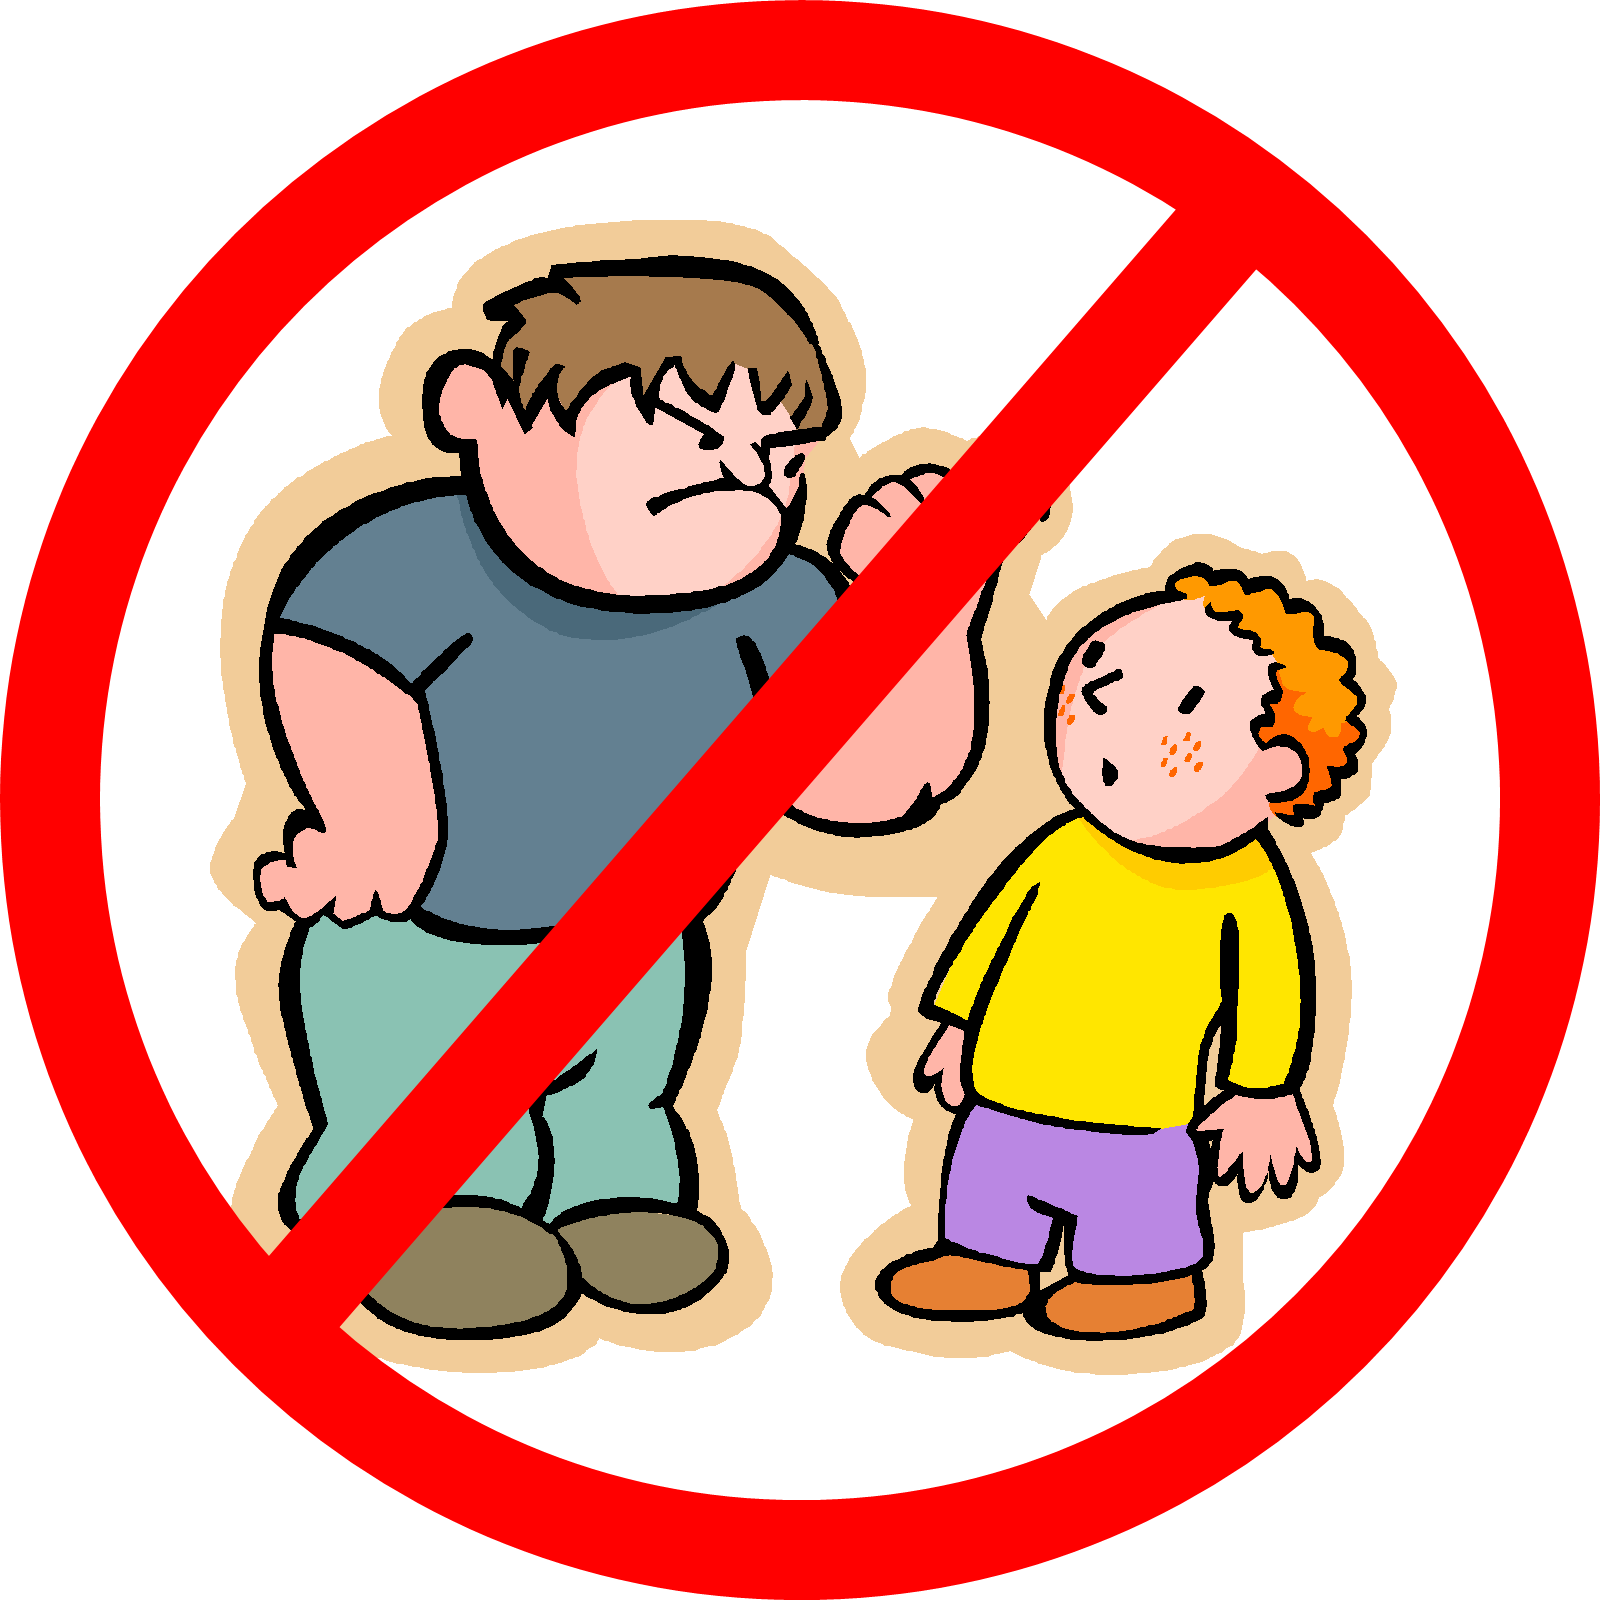 Maplewoodian com school district. Bully clipart bullying prevention image royalty free